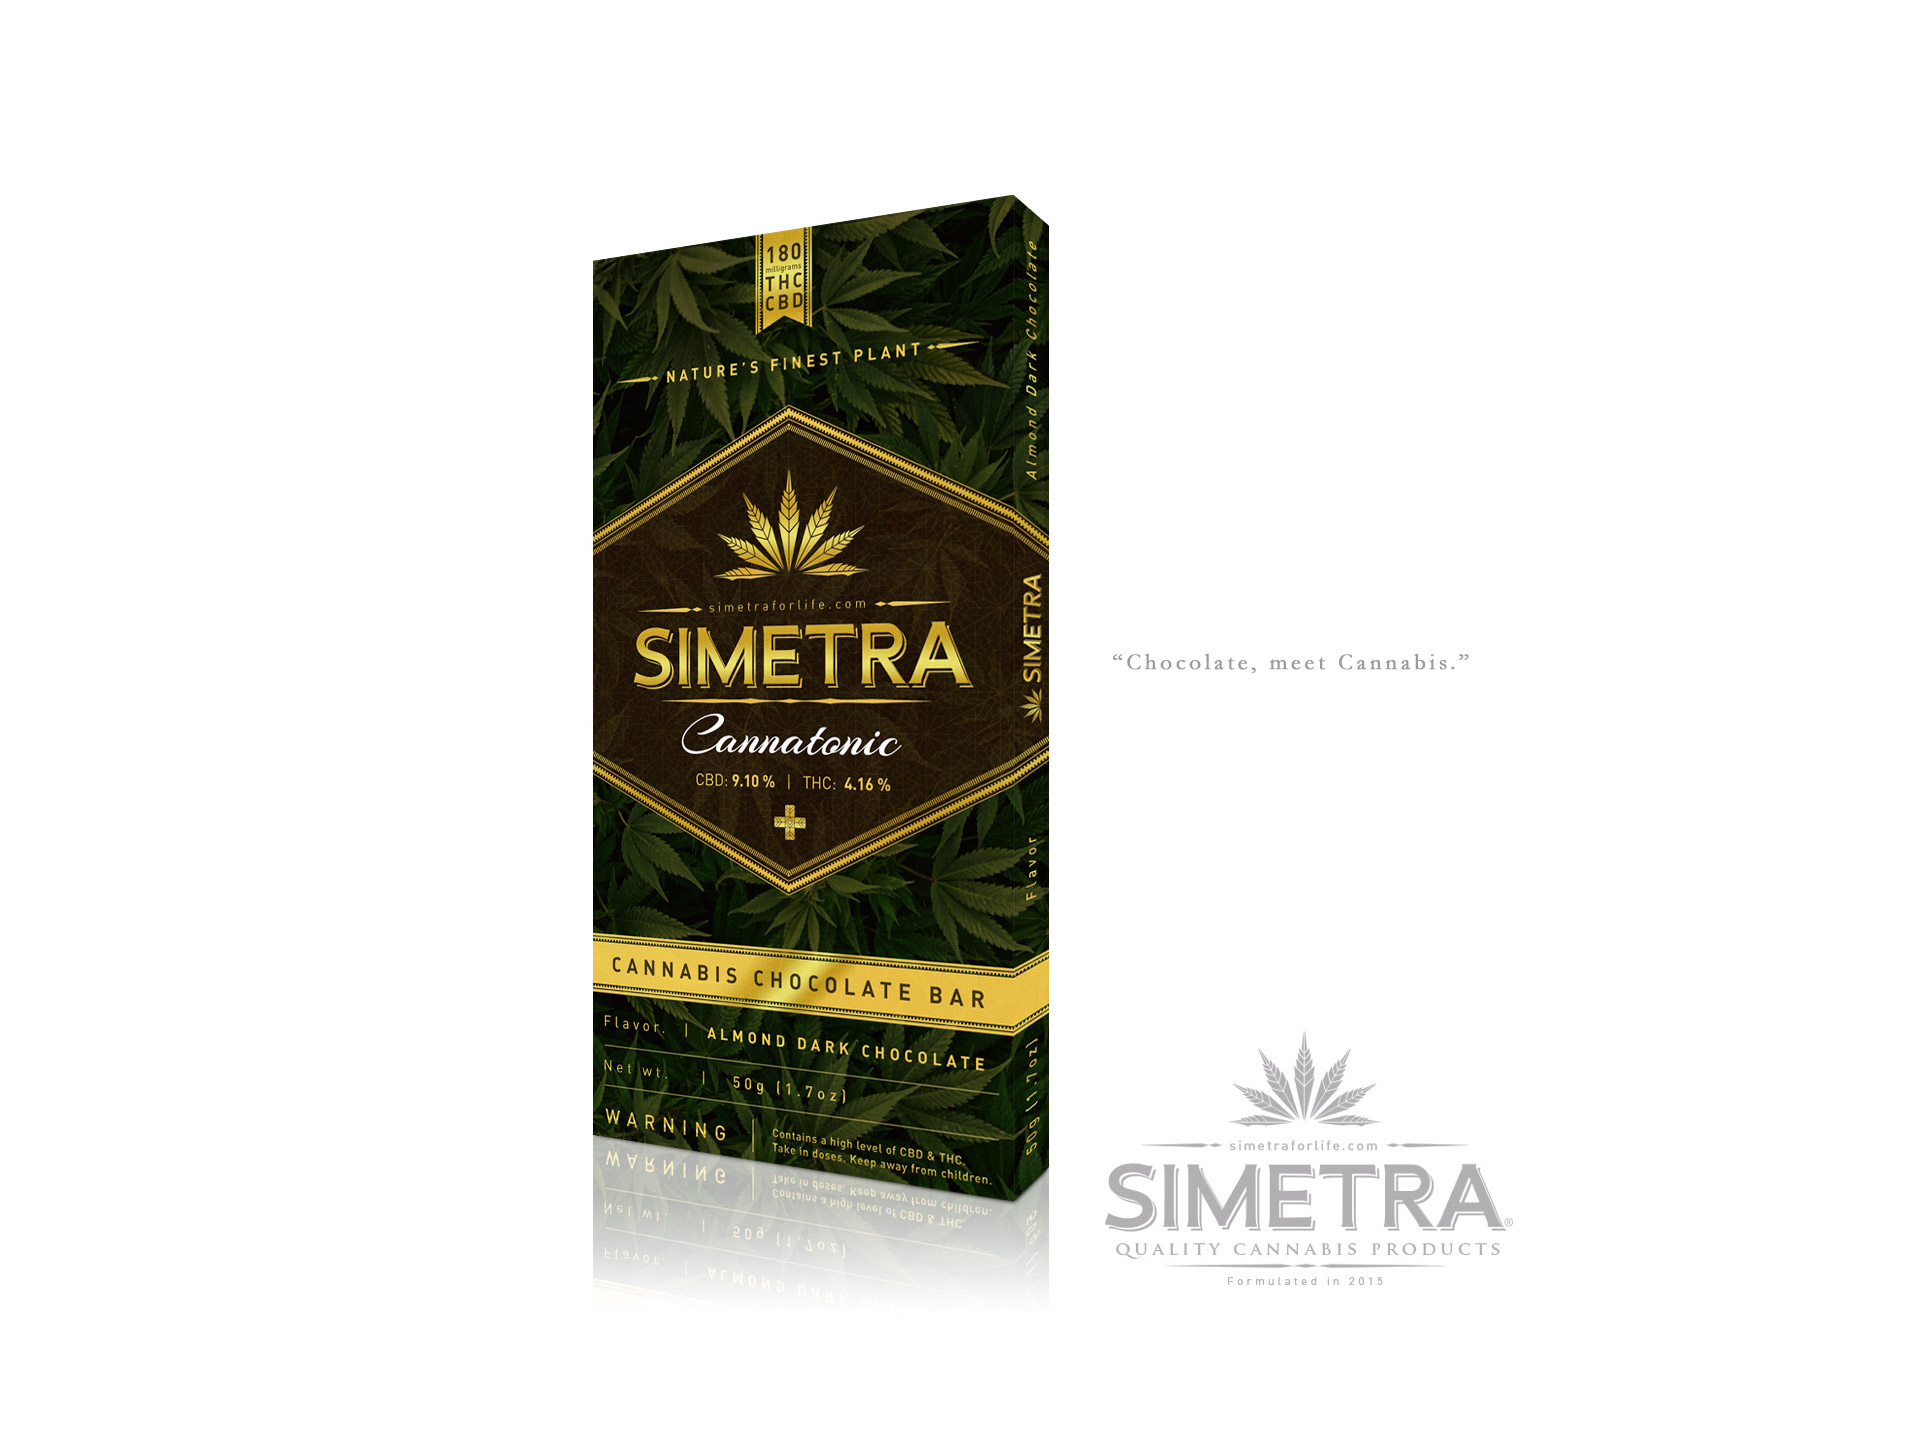 simetra-cannabis-chocolates01